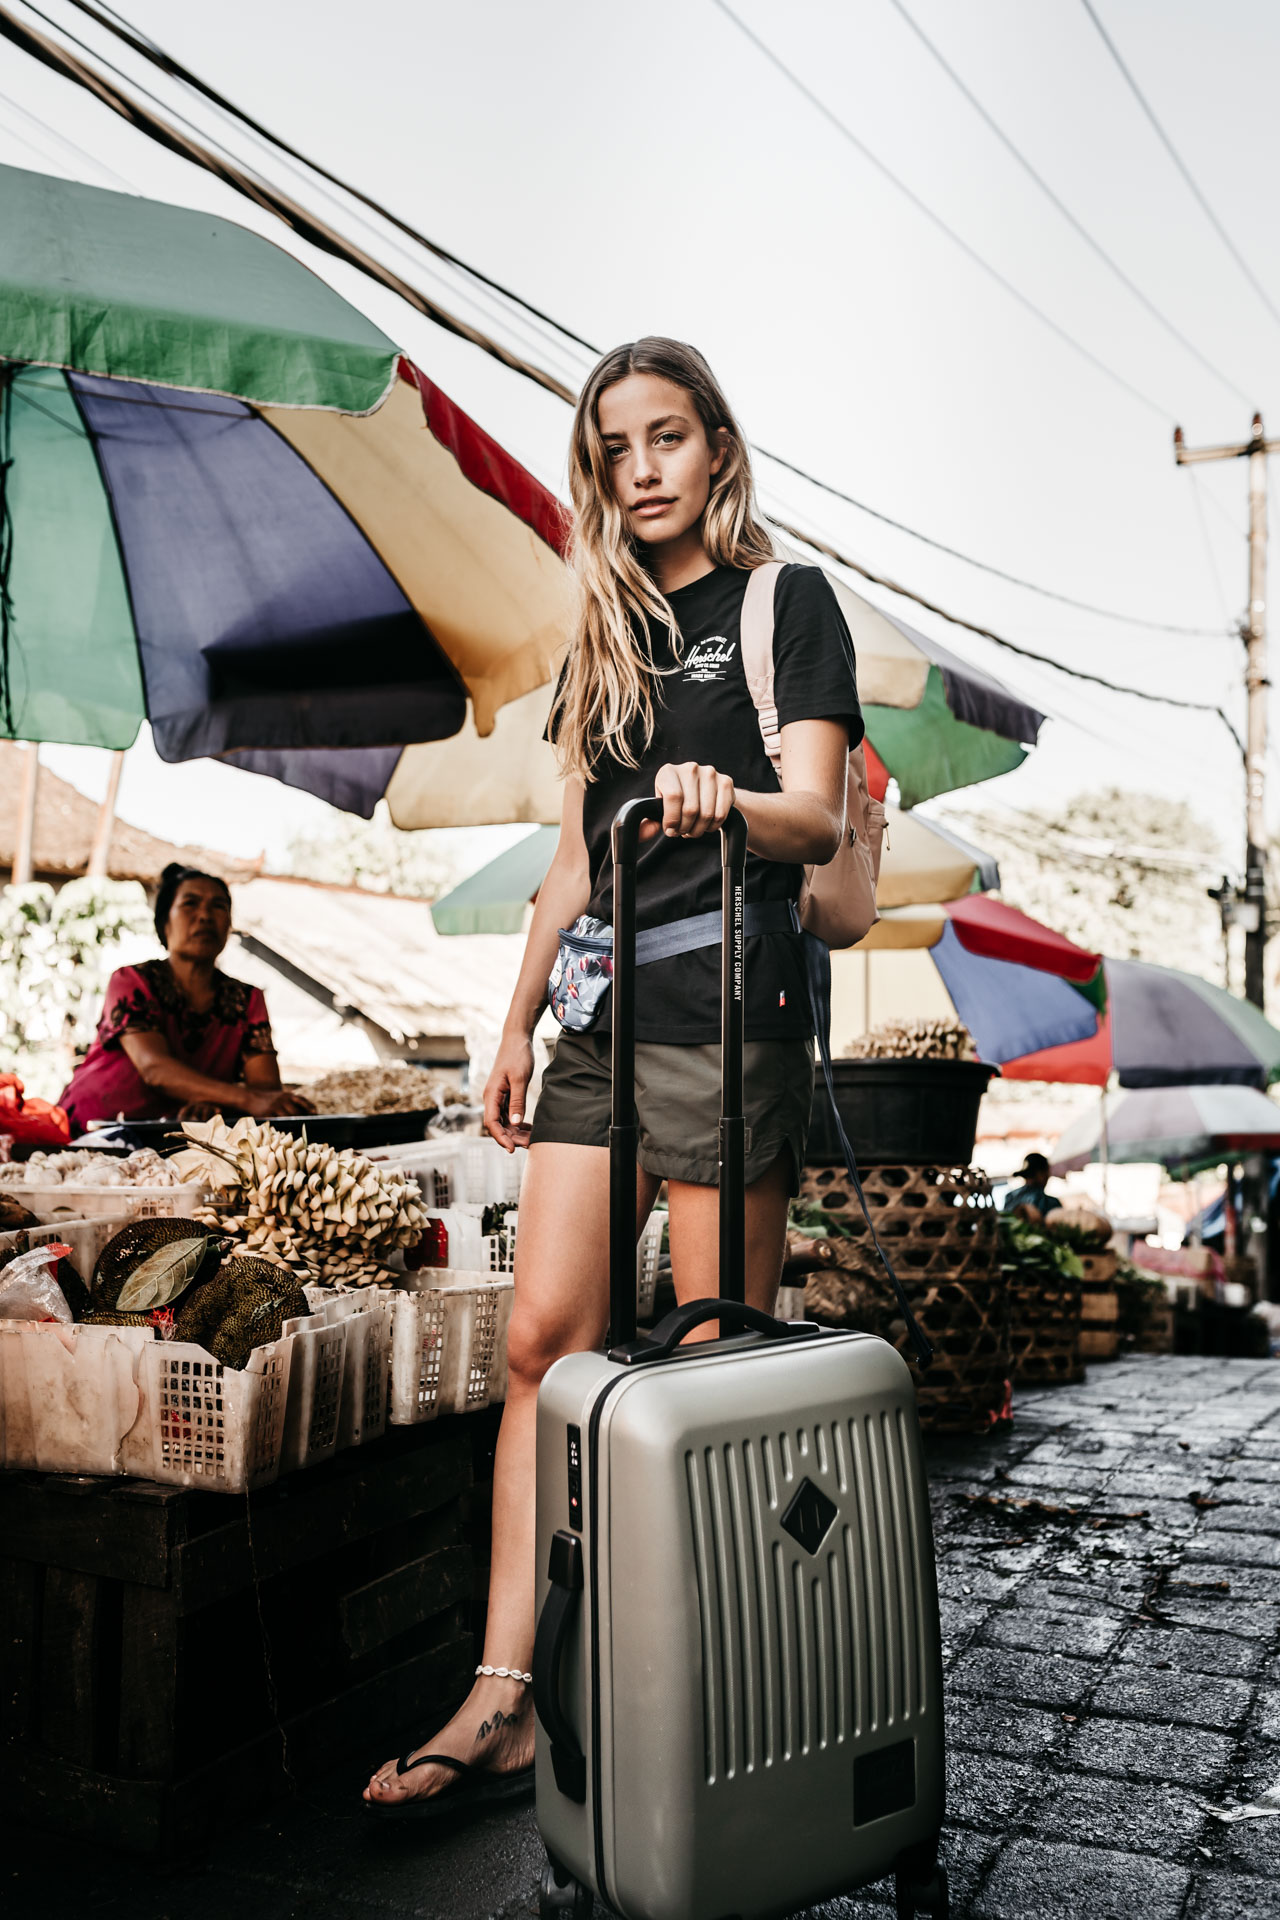 keira-mason-nordic-retreats-bali-markets-herschels-supply-bag.jpg